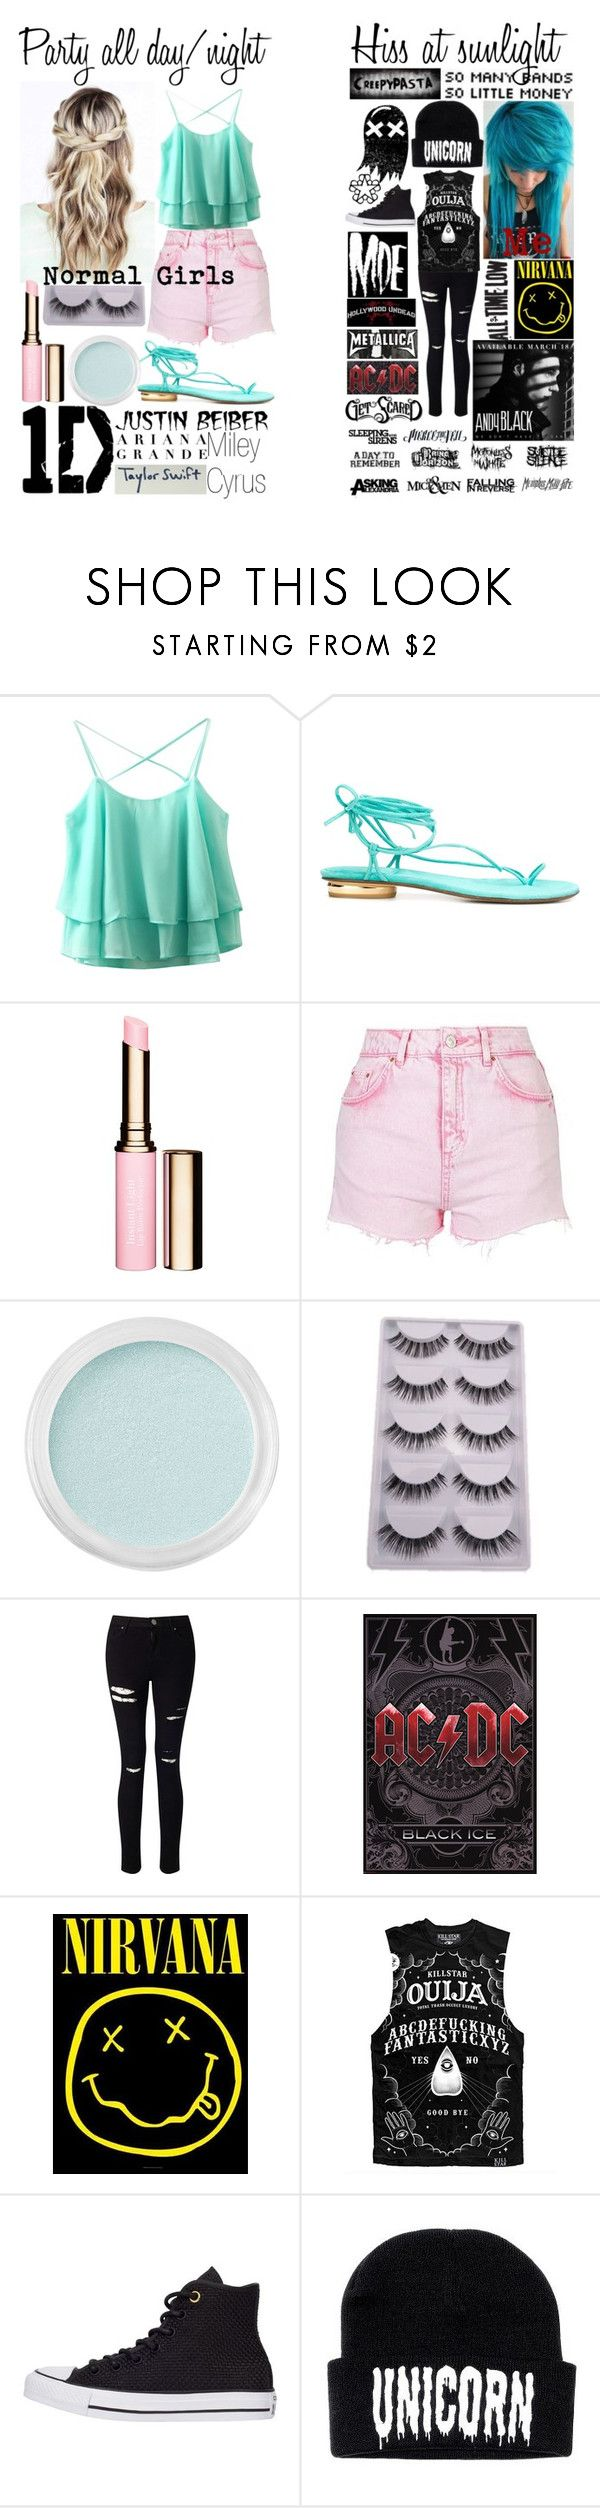 """""""Summer is comming : Normal girls vs. Me"""" by shadowgirl13 ❤ liked on Polyvore featuring Stuart Weitzman, Clarins, Topshop, Bare Escentuals, Miss Selfridge, Killstar and Converse"""